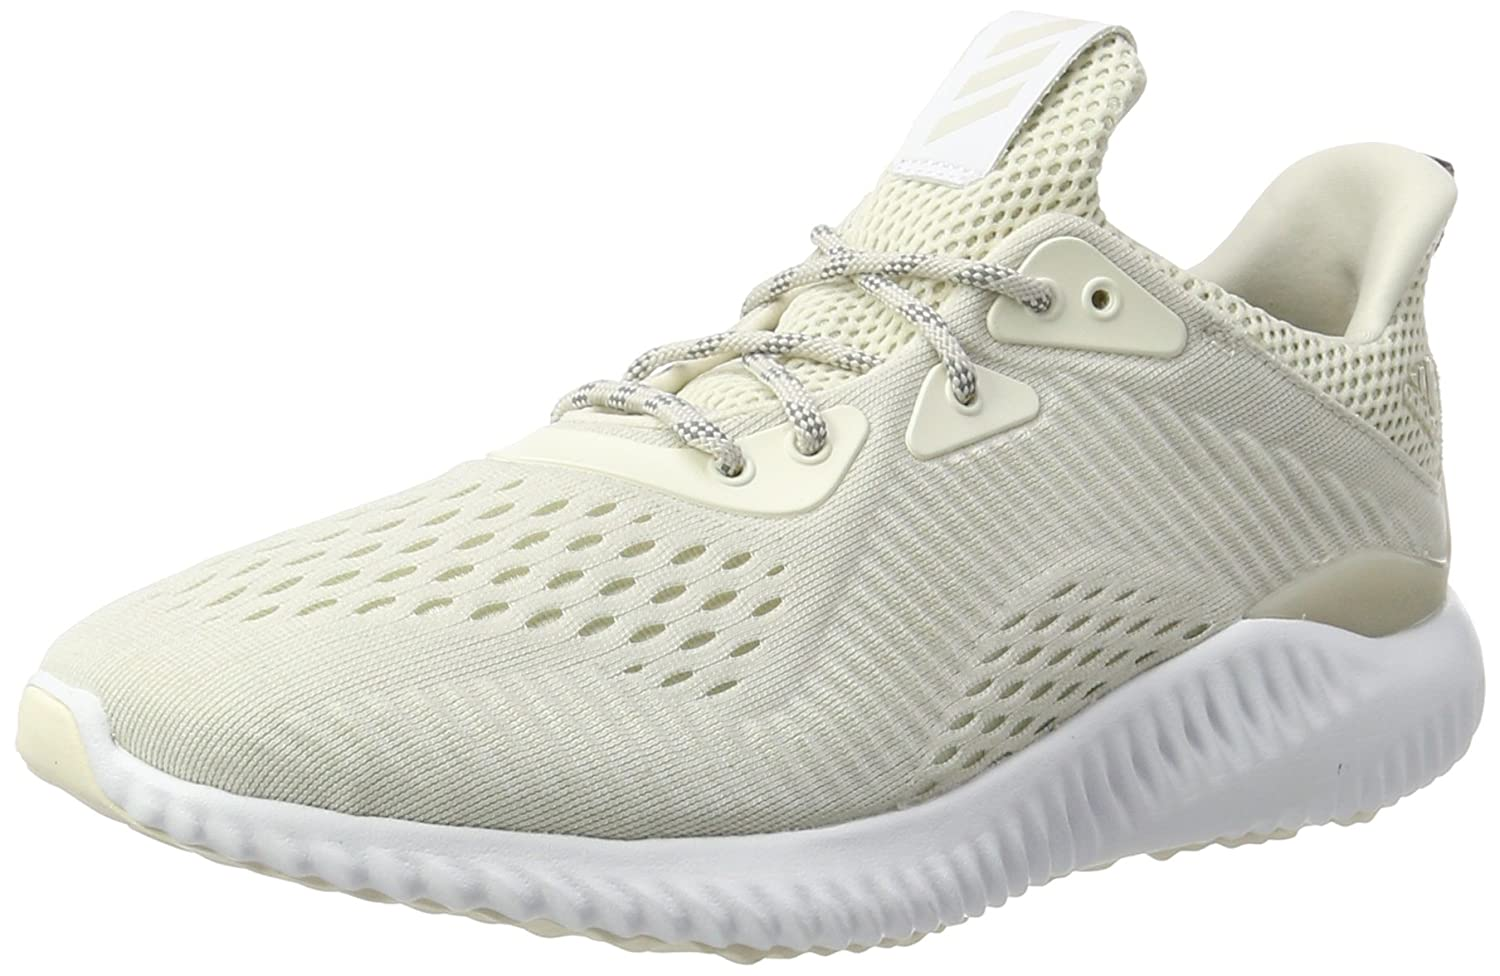 40e0cc2f6984 adidas Men s Alphabounce Em Competition Running Shoes  Amazon.co.uk  Shoes    Bags